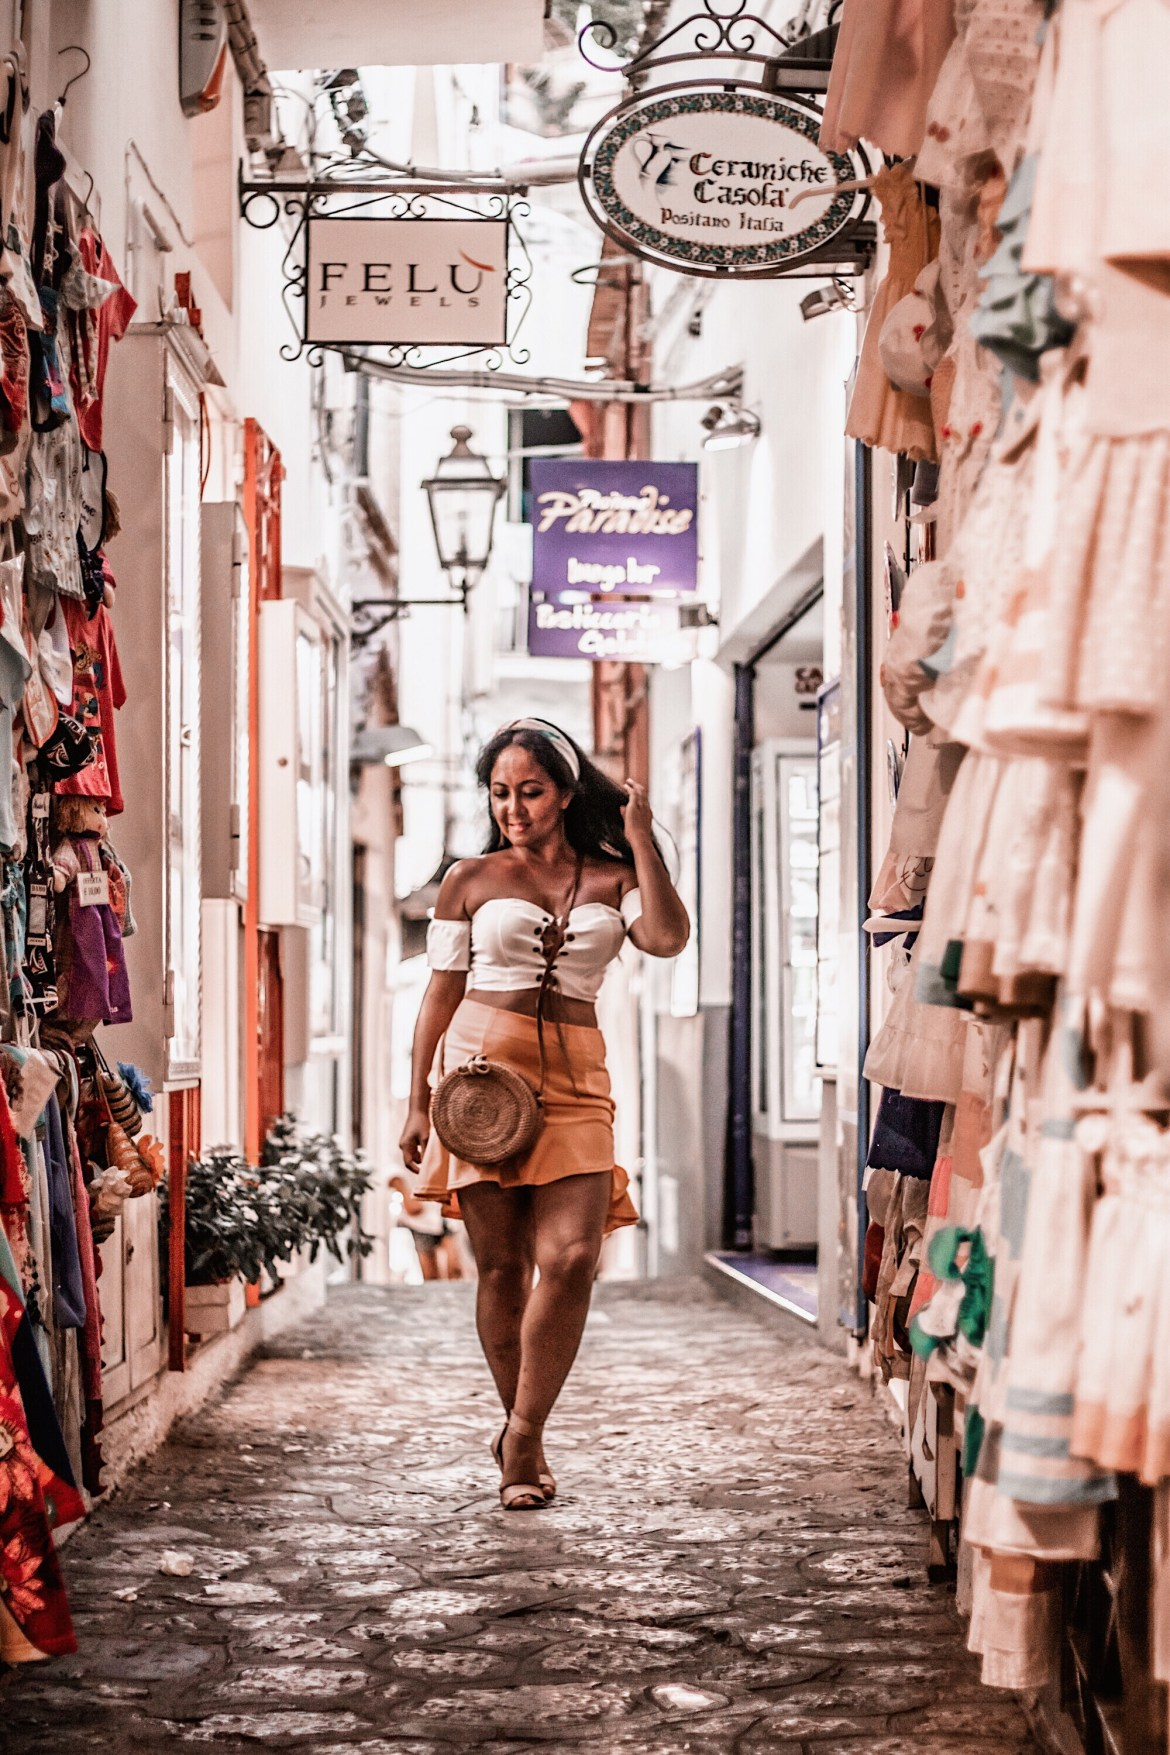 Positano-Travel-Guide-Best-Things-To-Do-In-Positano-Paris-Chic-Style-11